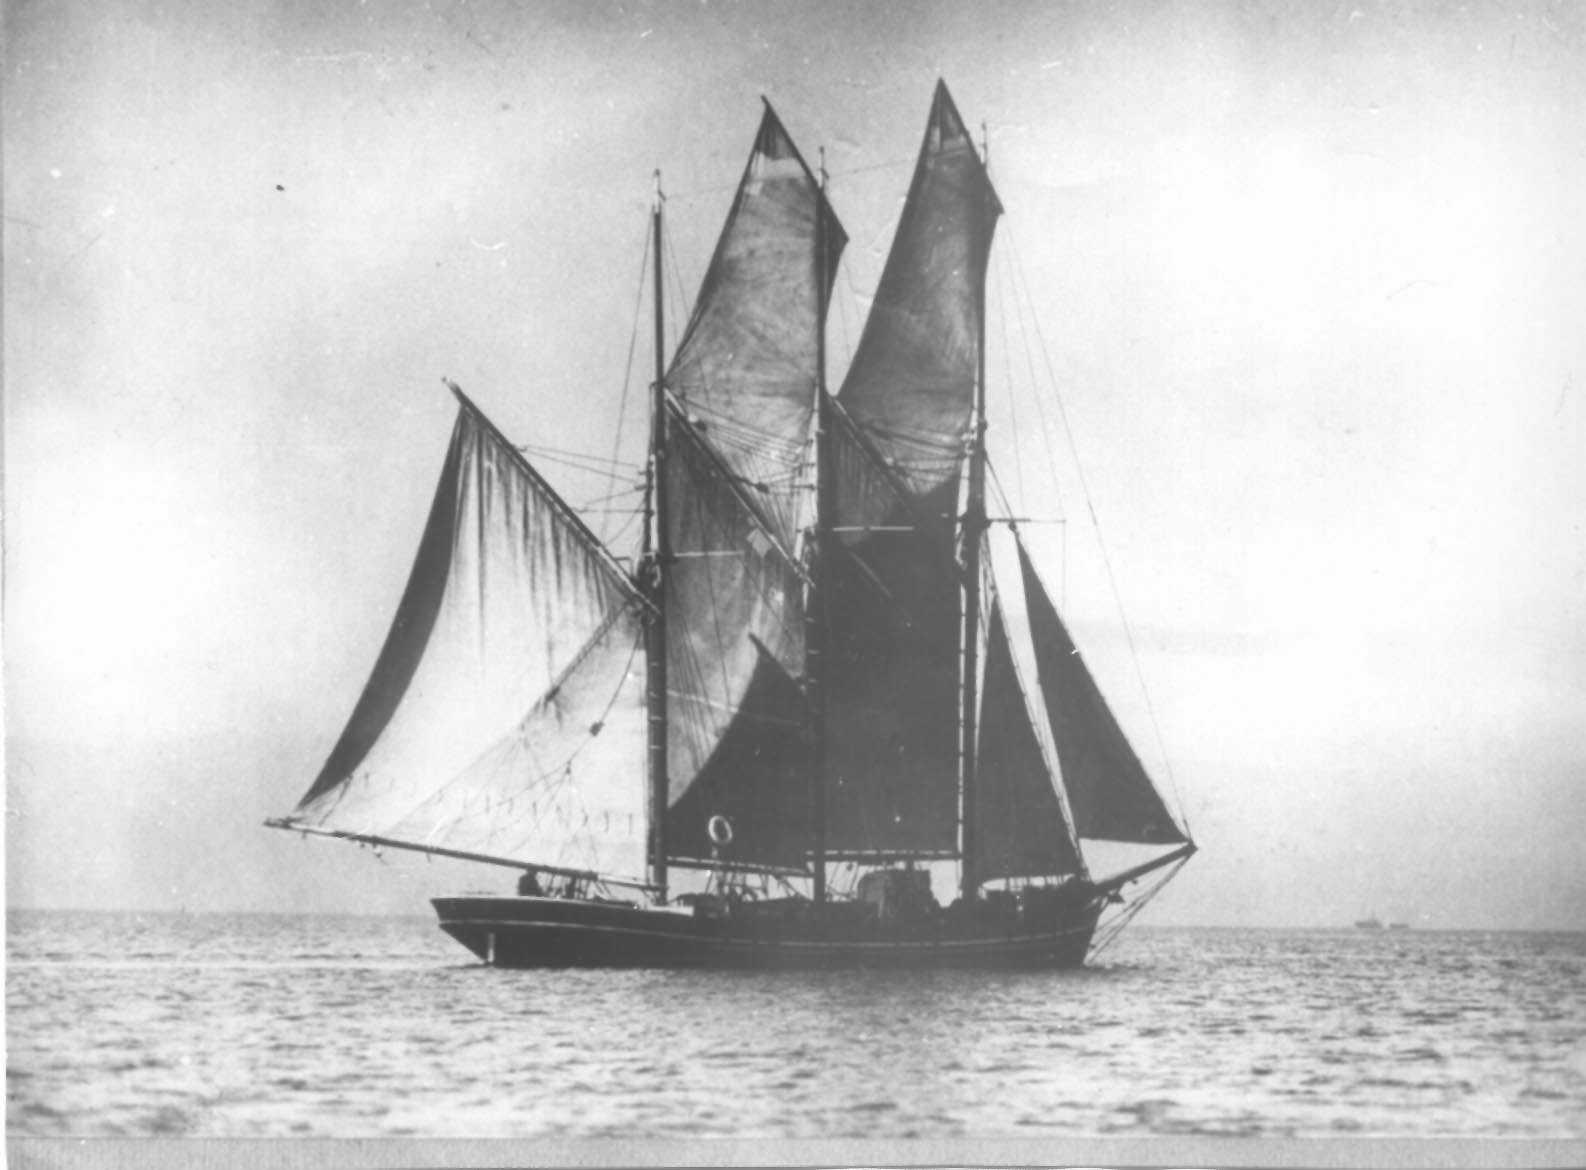 """""""Leillateah"""" is described in R Parsons' """"Ketches of Australia"""" as a Ketch of 43 gross ton, built in 1891.  In 1908 it capsized off Recherche Bay, and was later registered in Melbourne in 1912.  It was bought by Messrs. GT & CG Heritage in Adelaide in the"""